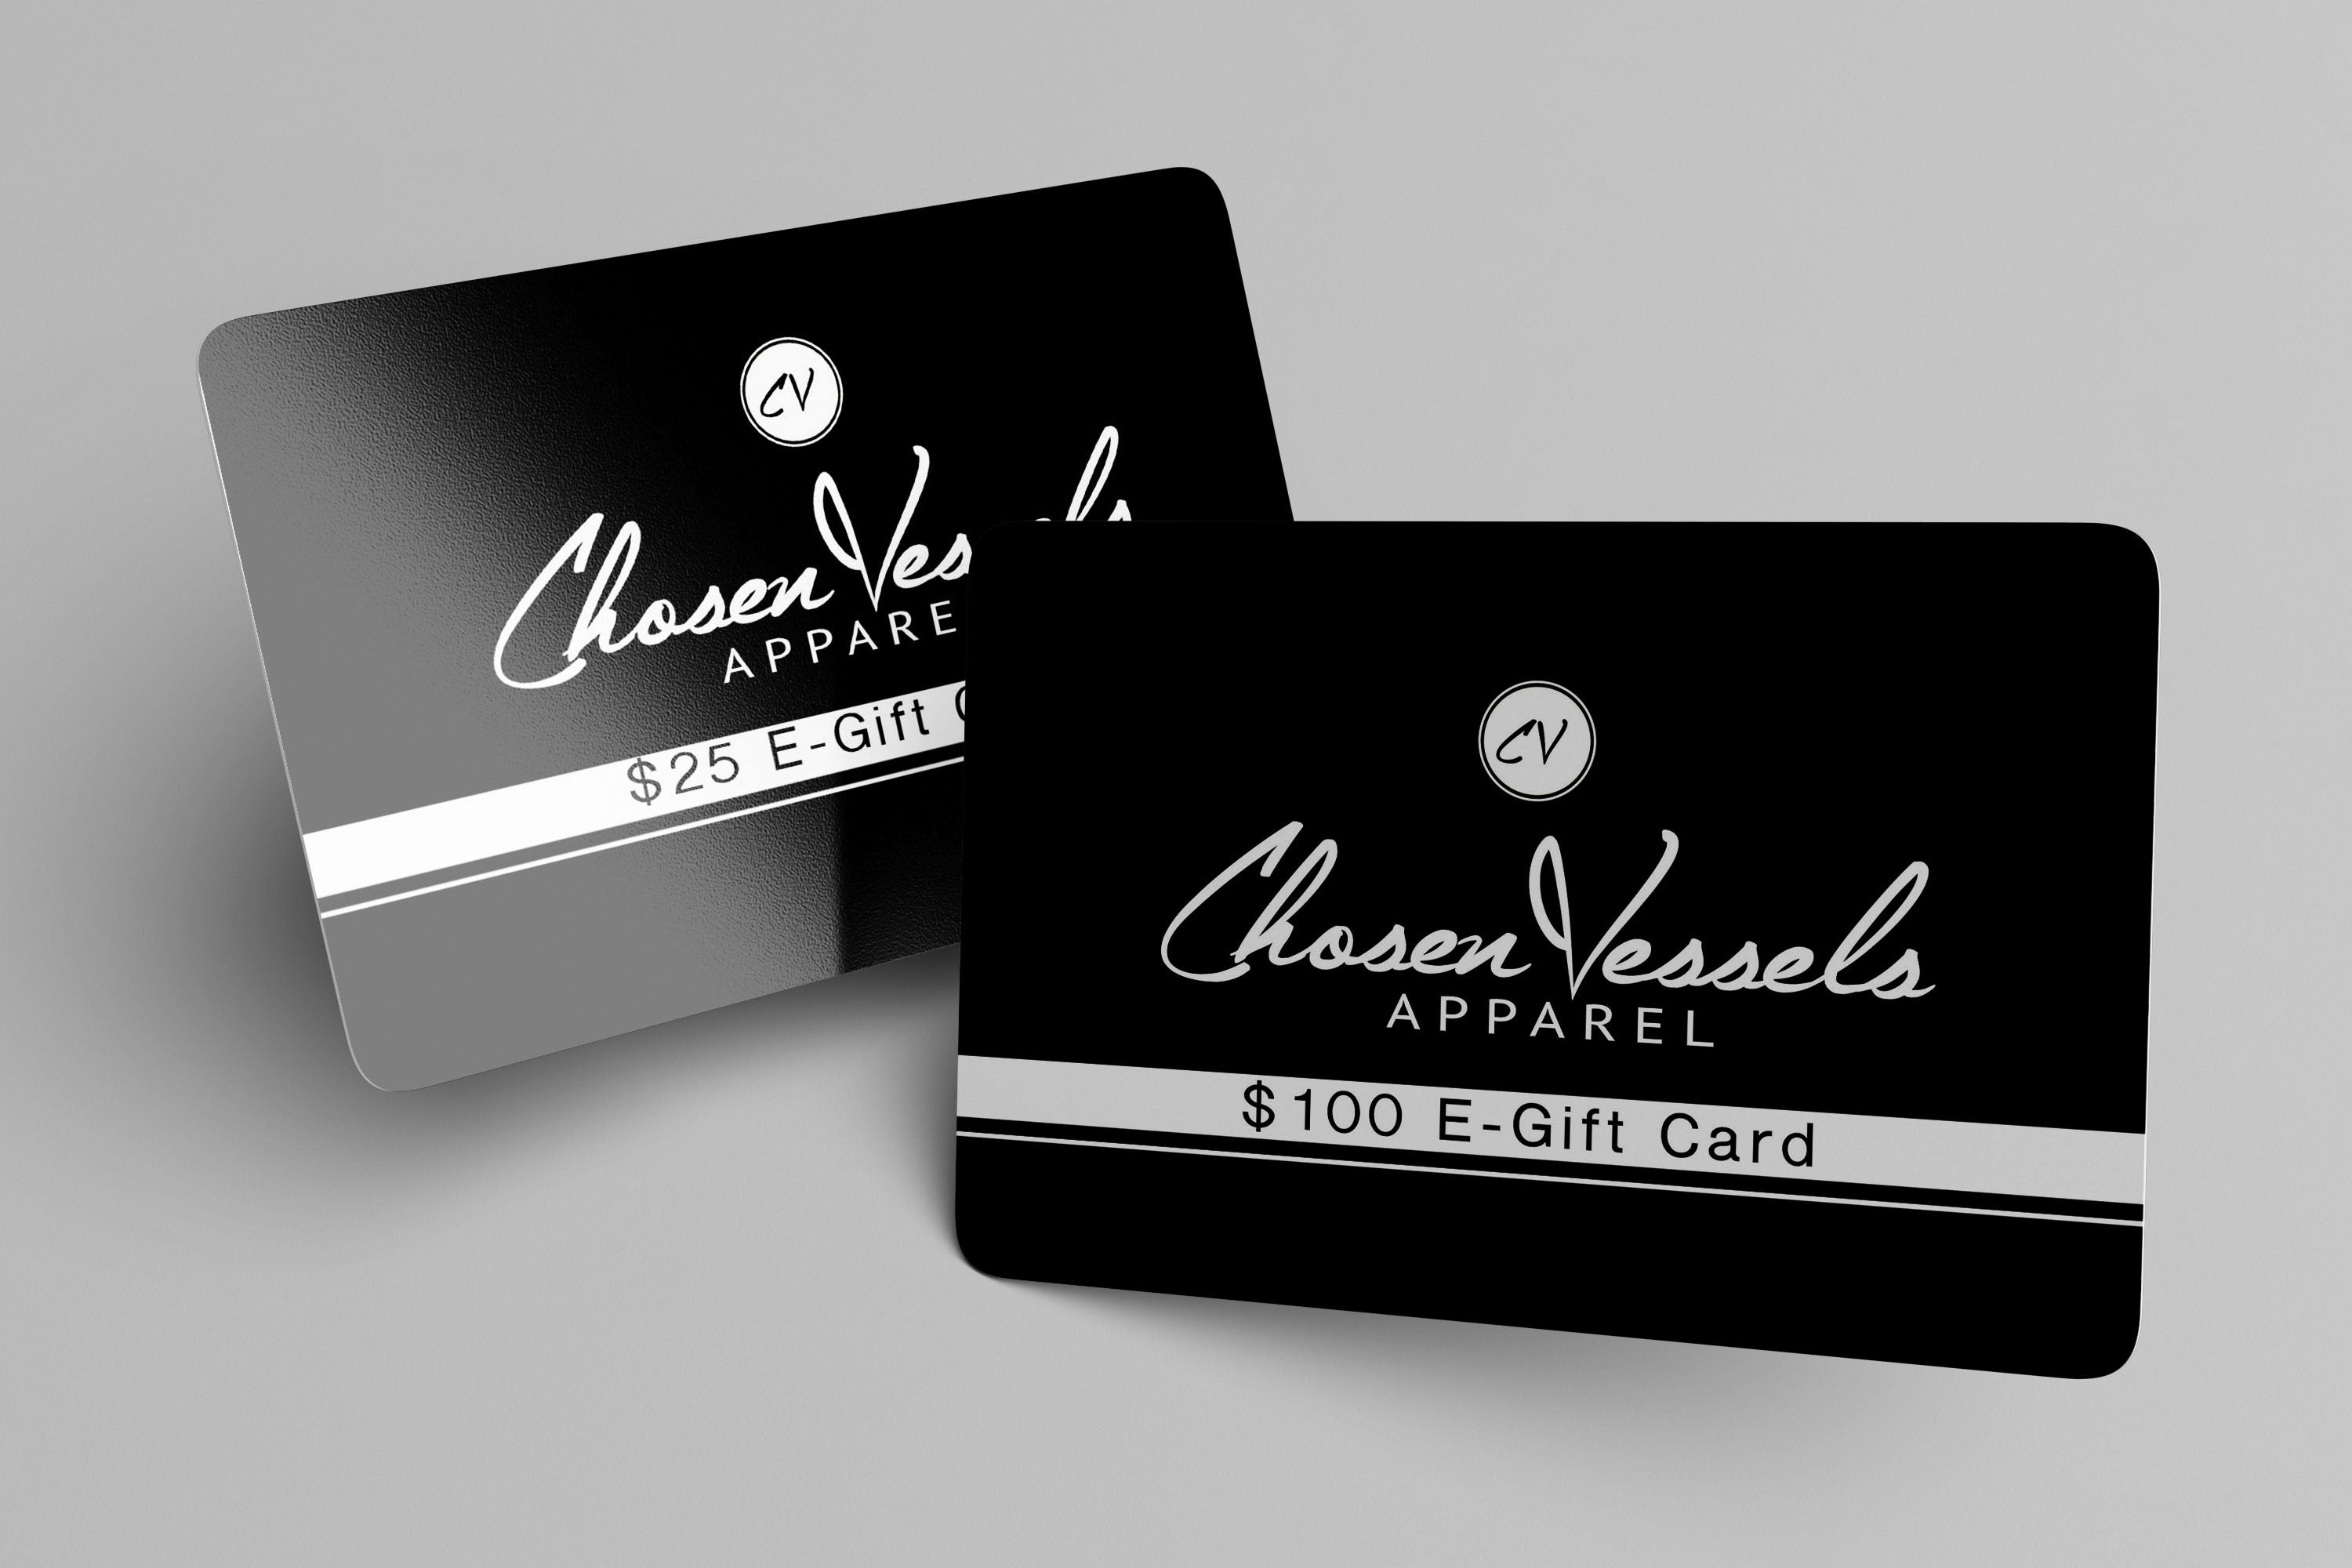 Chosen Vessels Apparel Gift Card